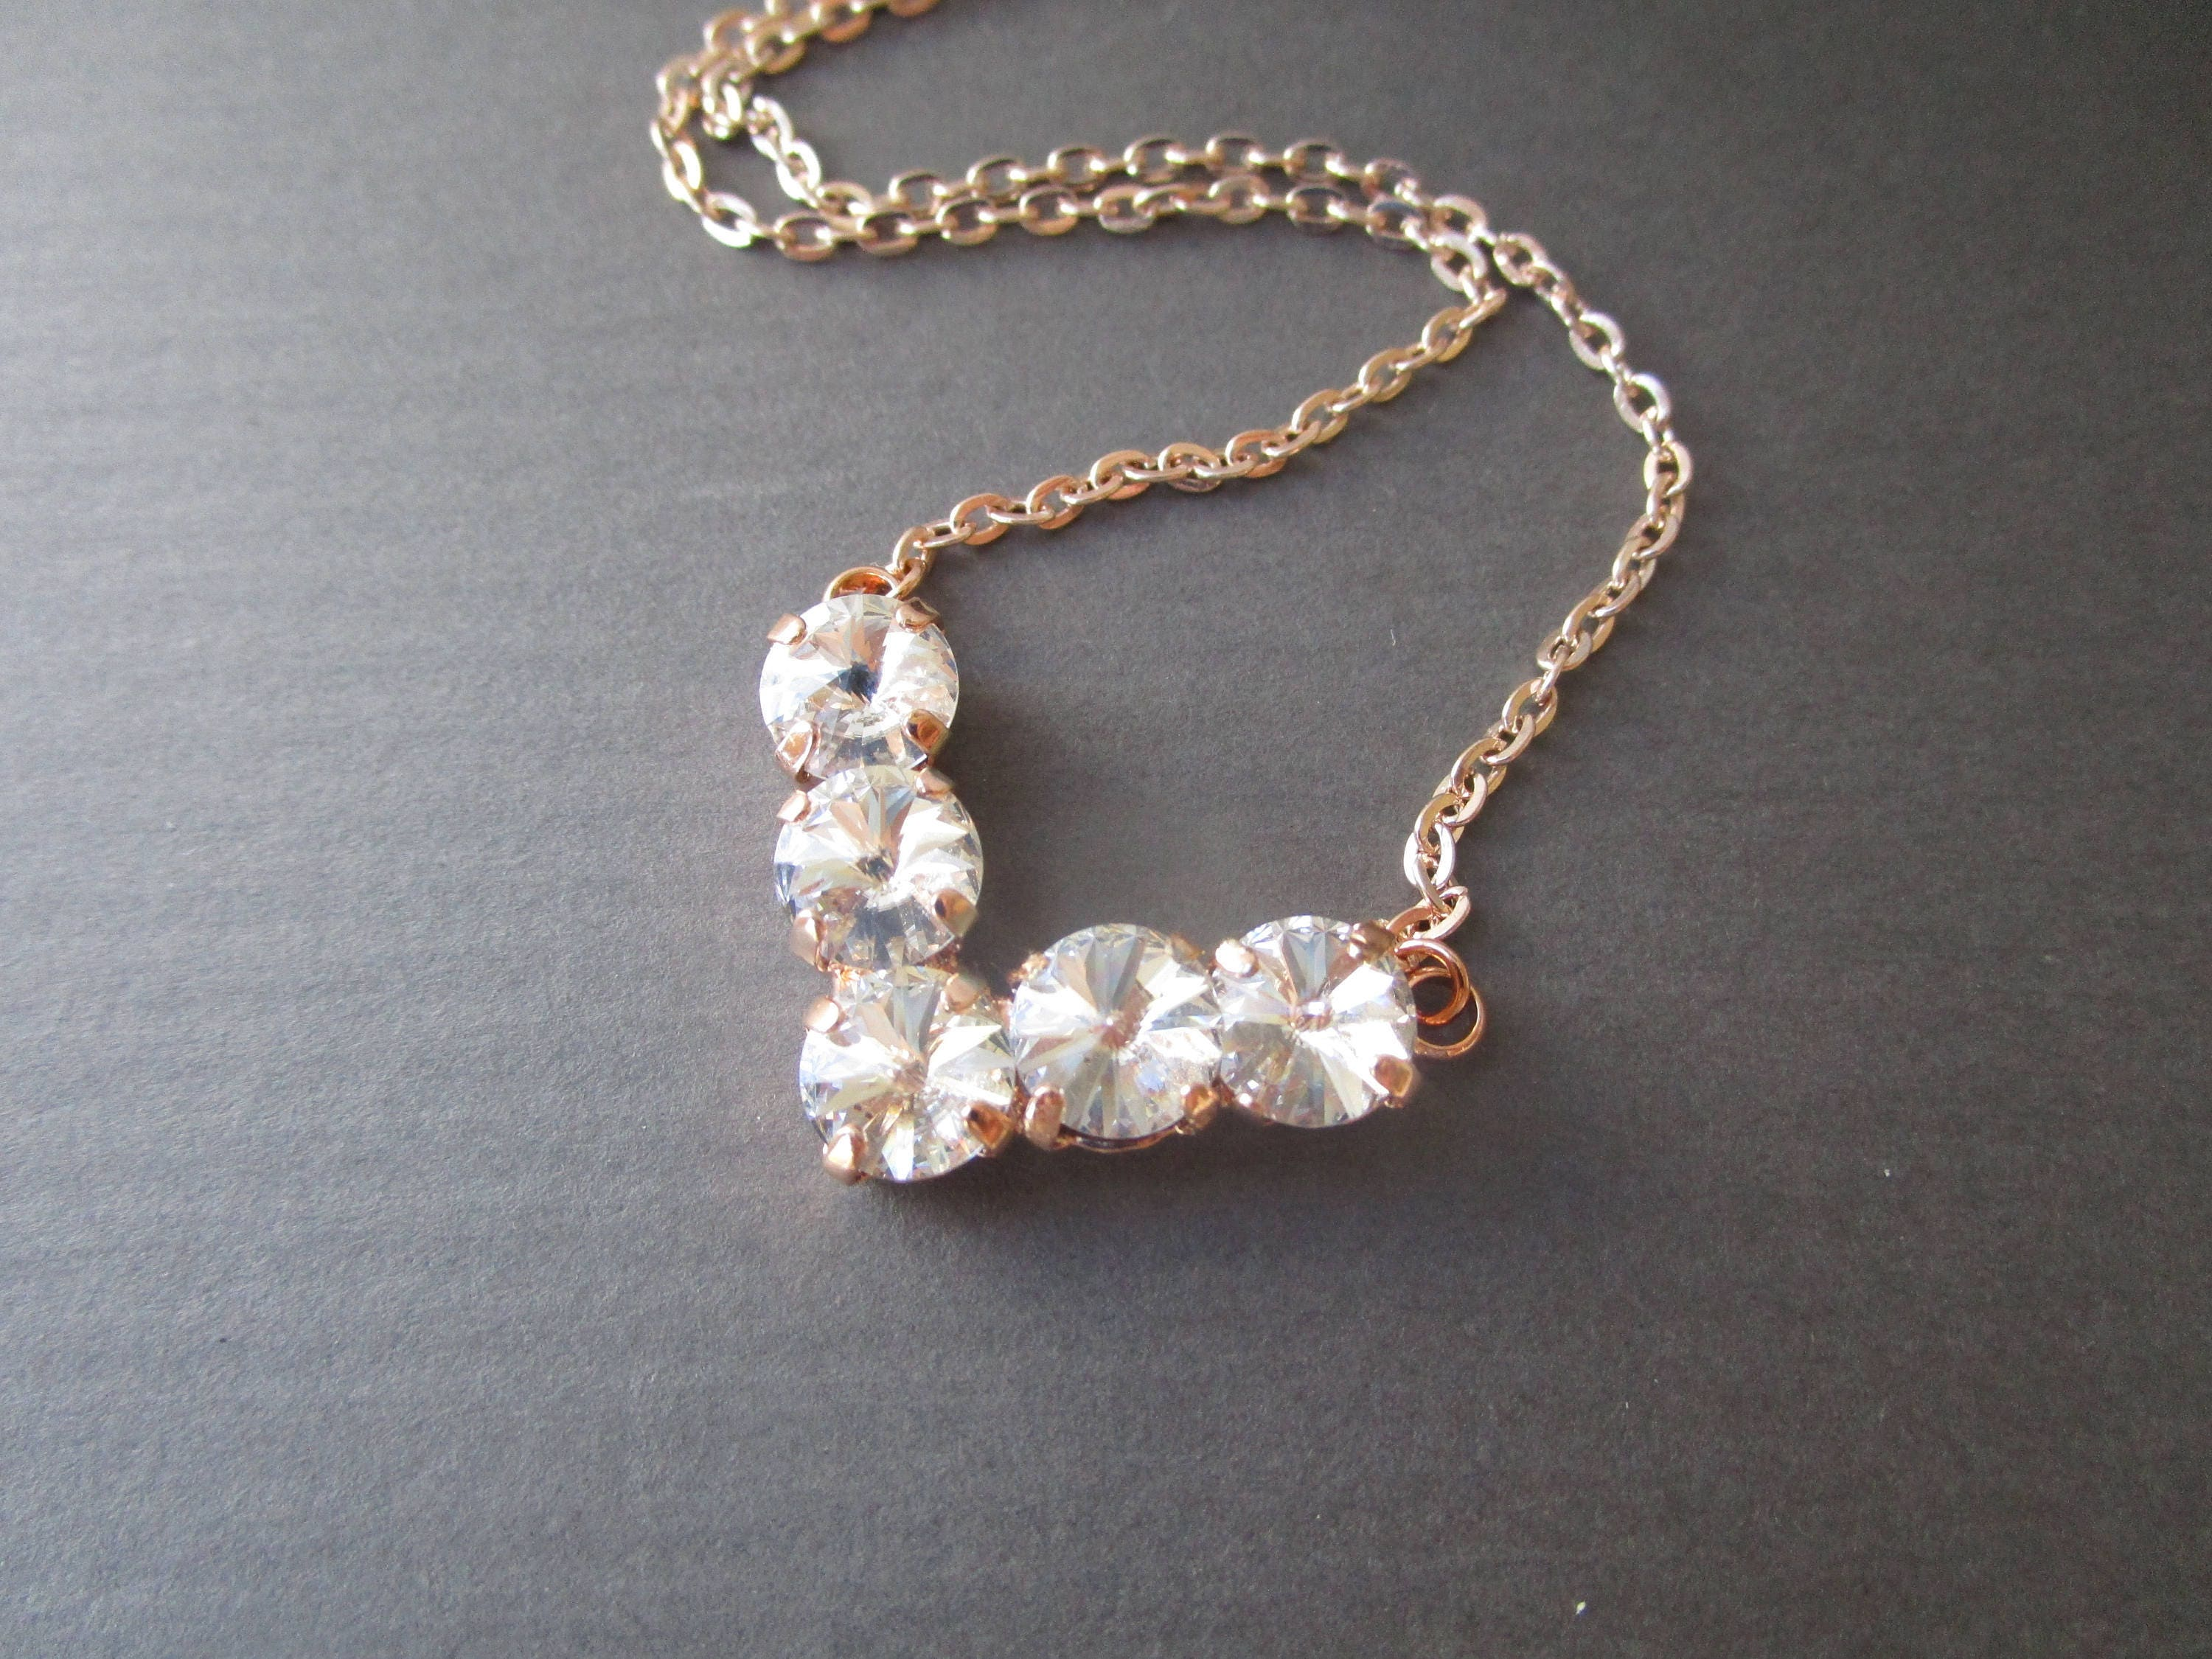 blush enlarge necklace productcatalog parties jewelry regional heart crystal by detail product swarovski home touchstone